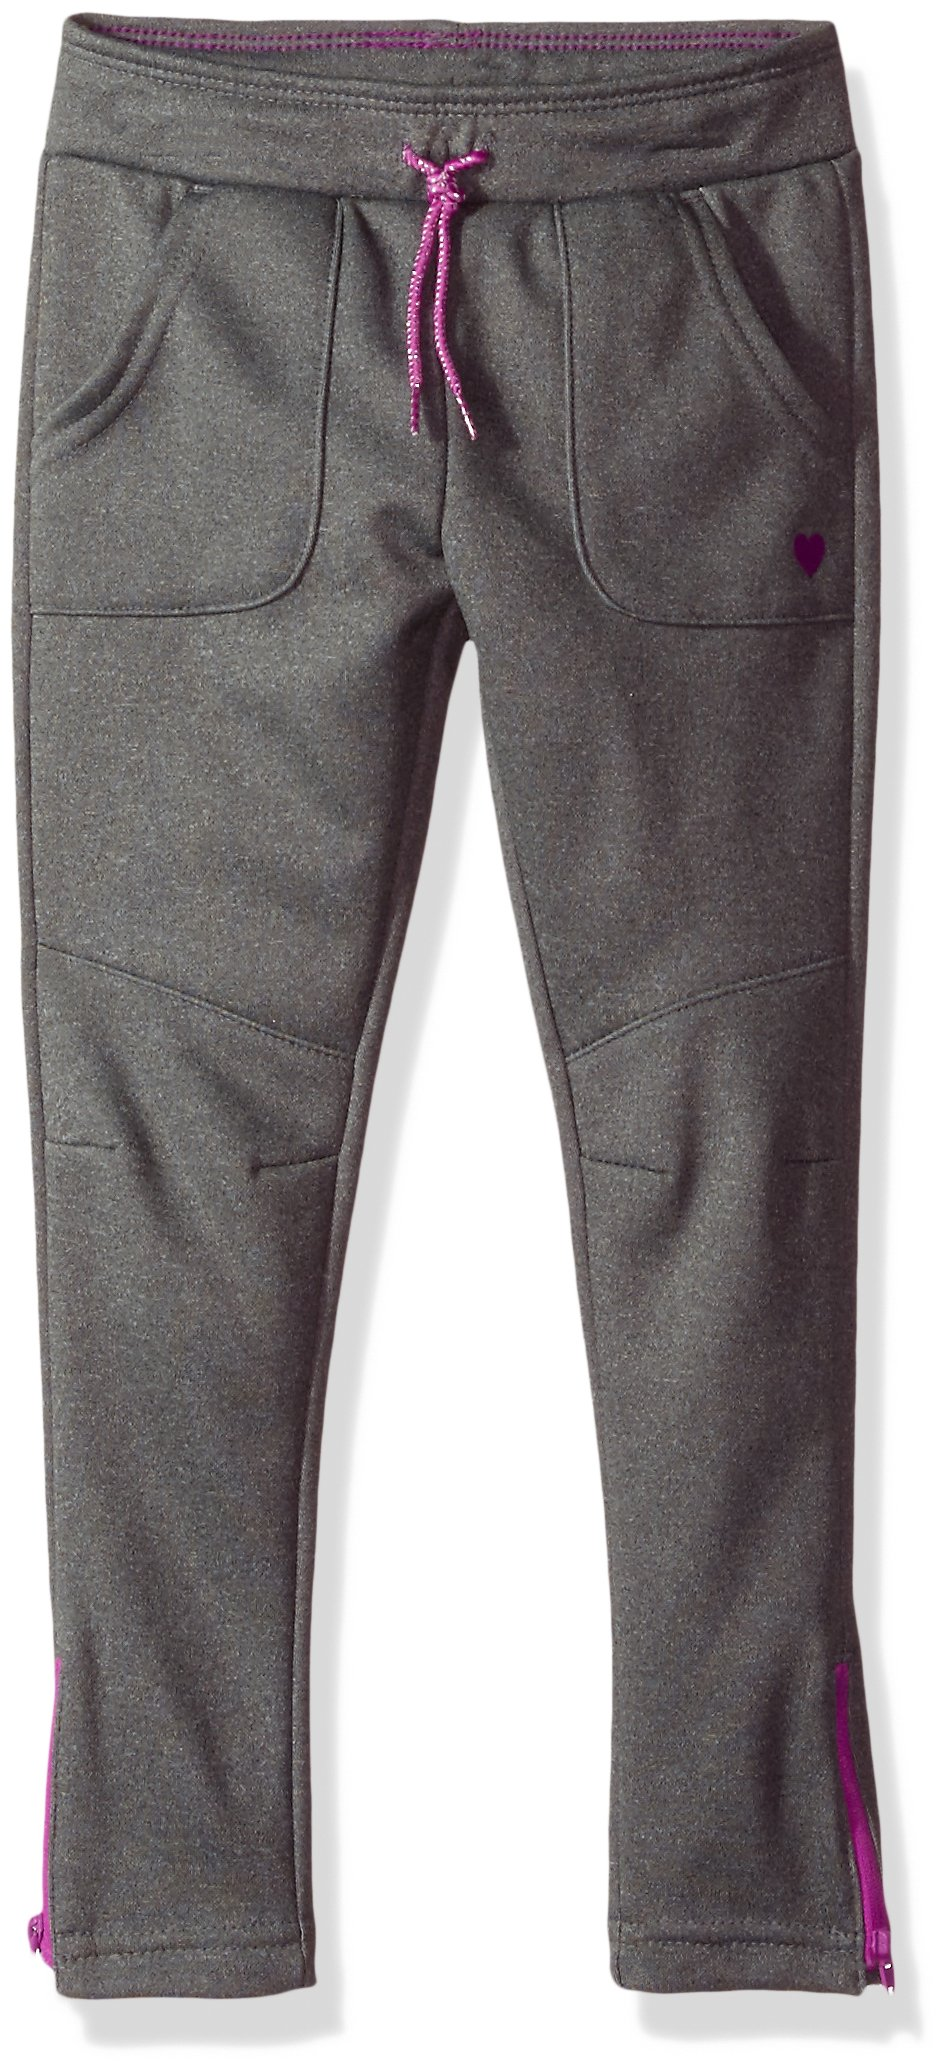 OshKosh B'Gosh Girls' Toddler Fleece Jogger Pants, Grey, 3T by OshKosh B'Gosh (Image #1)